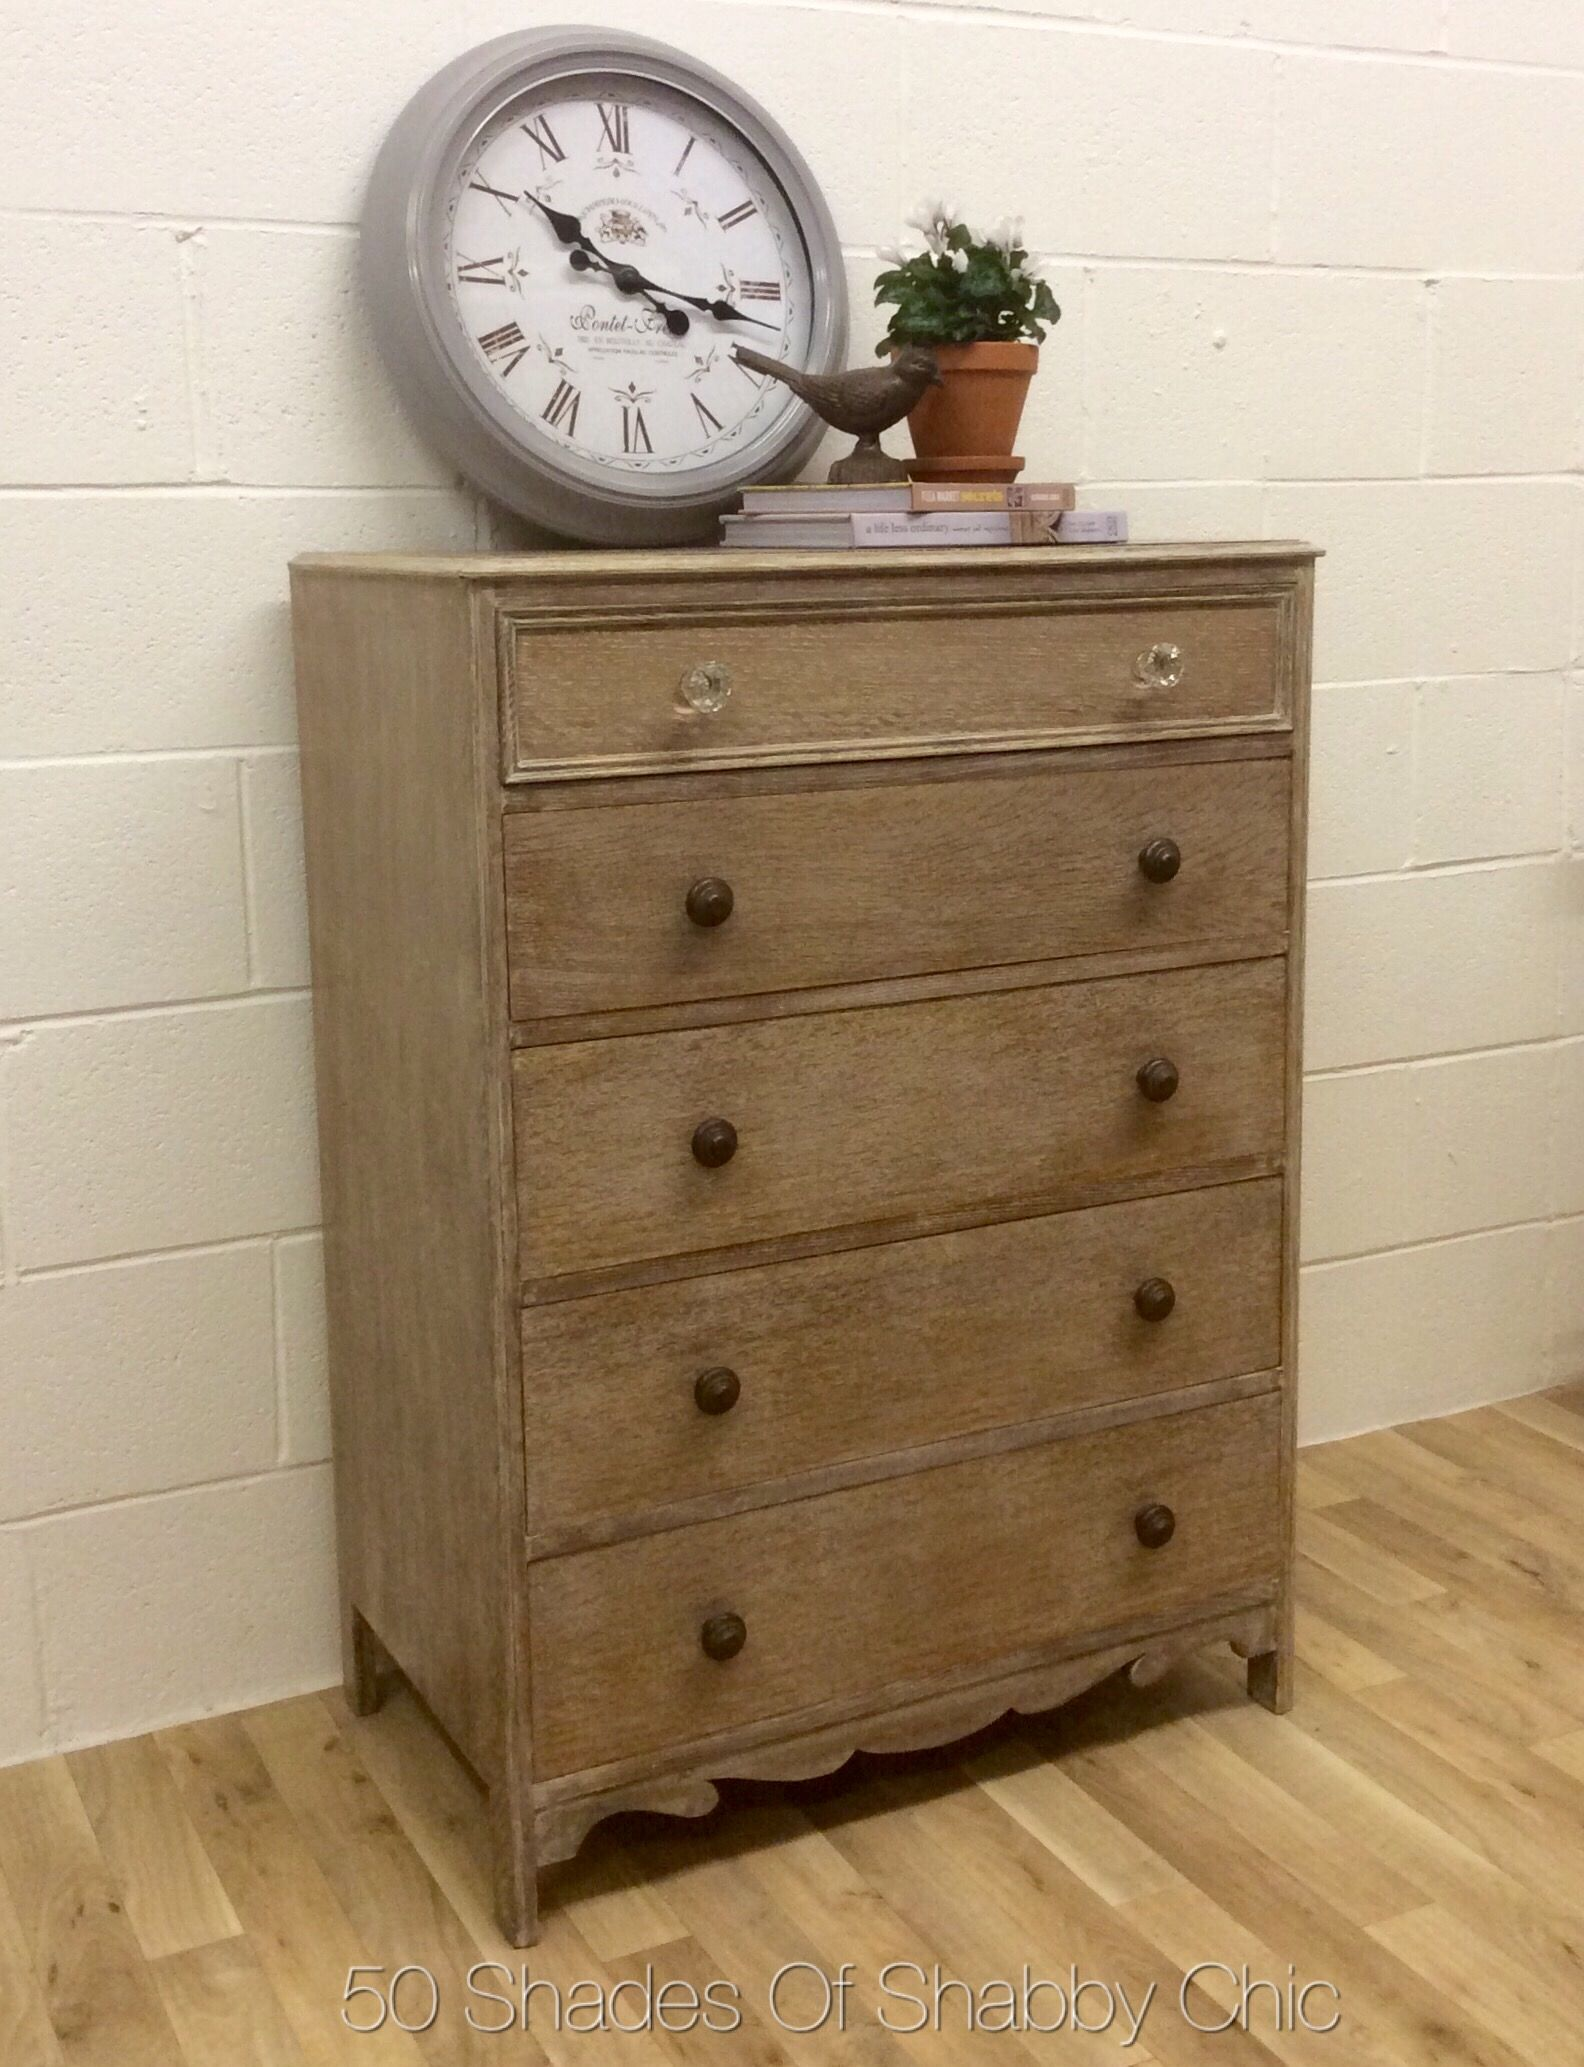 Vintage Rustic Style White Washed Oak Tallboy Chest Of Drawers A Solid Piece Of Furniture S White Washed Oak Tallboy Chest Of Drawers Dresser As Nightstand